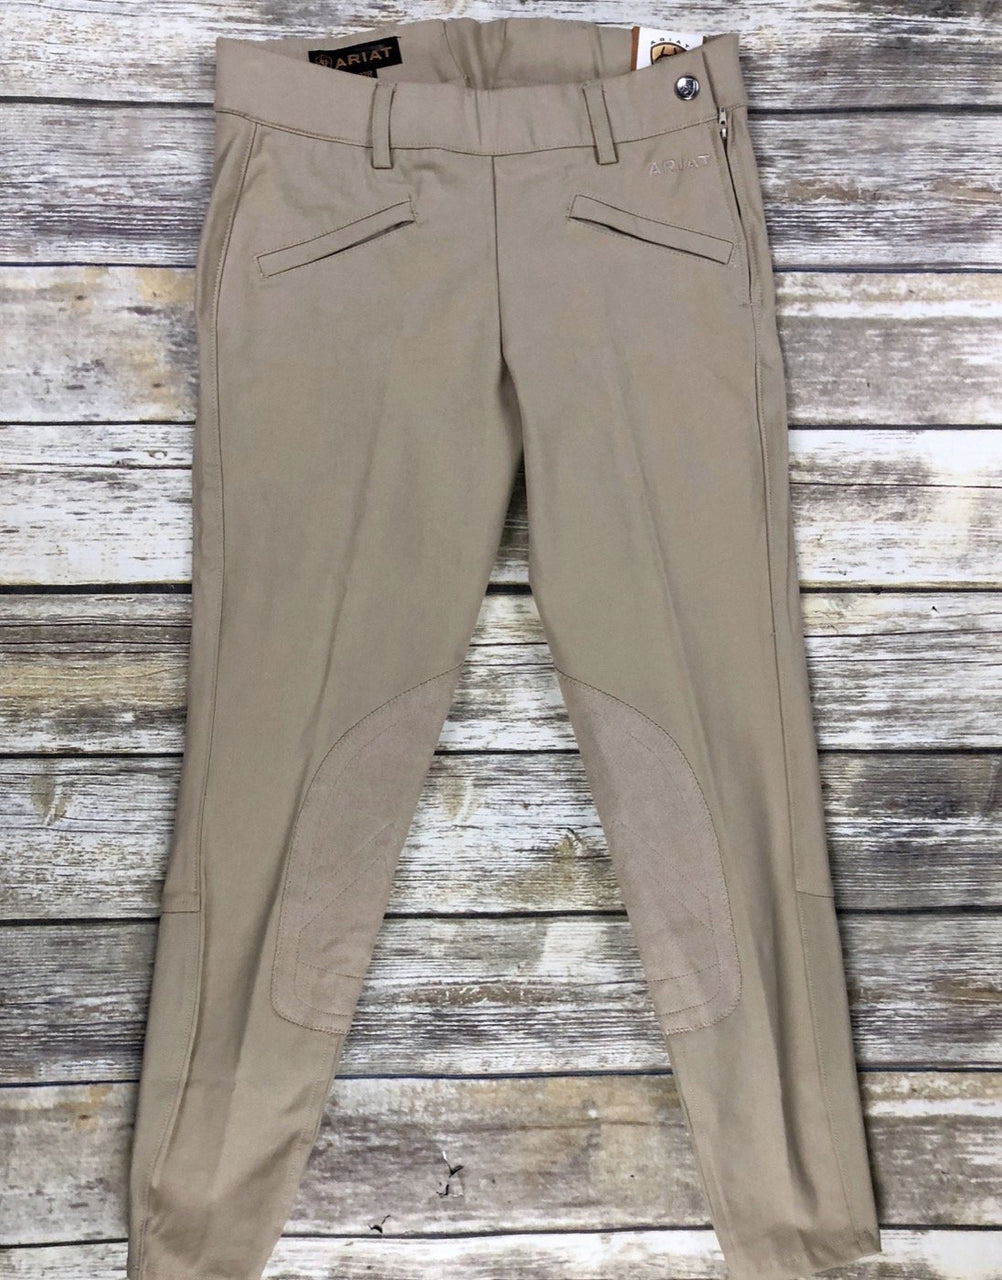 Ariat Performer Side Zip Knee Patch Breeches in Tan - Women's 22R